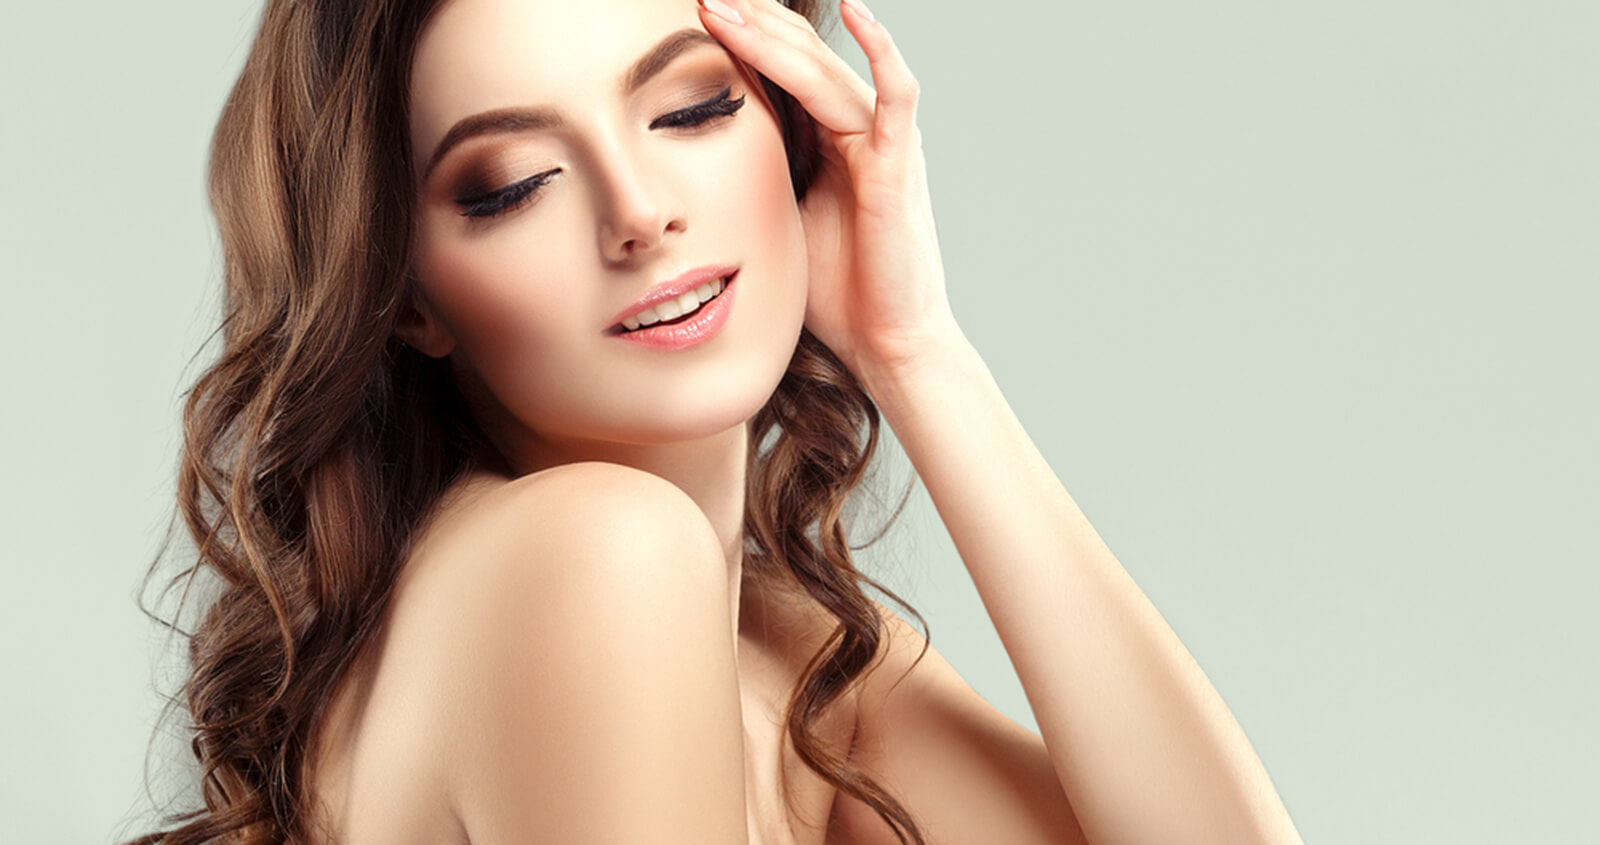 Silicone Sheets for Scar Treatment in New York Area